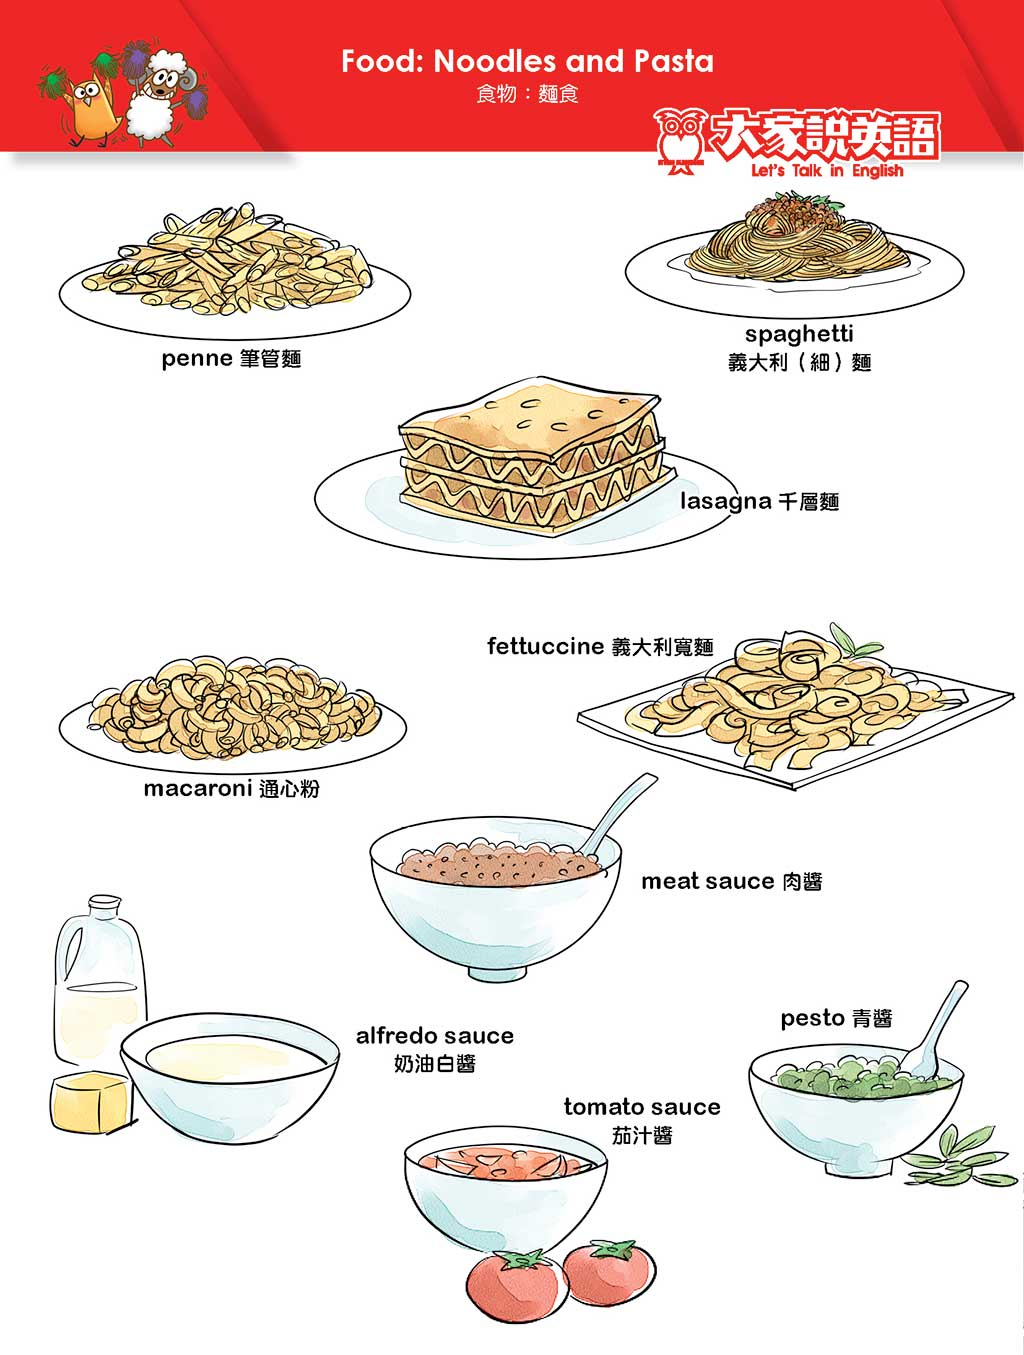 Food: Noodles and Pasta